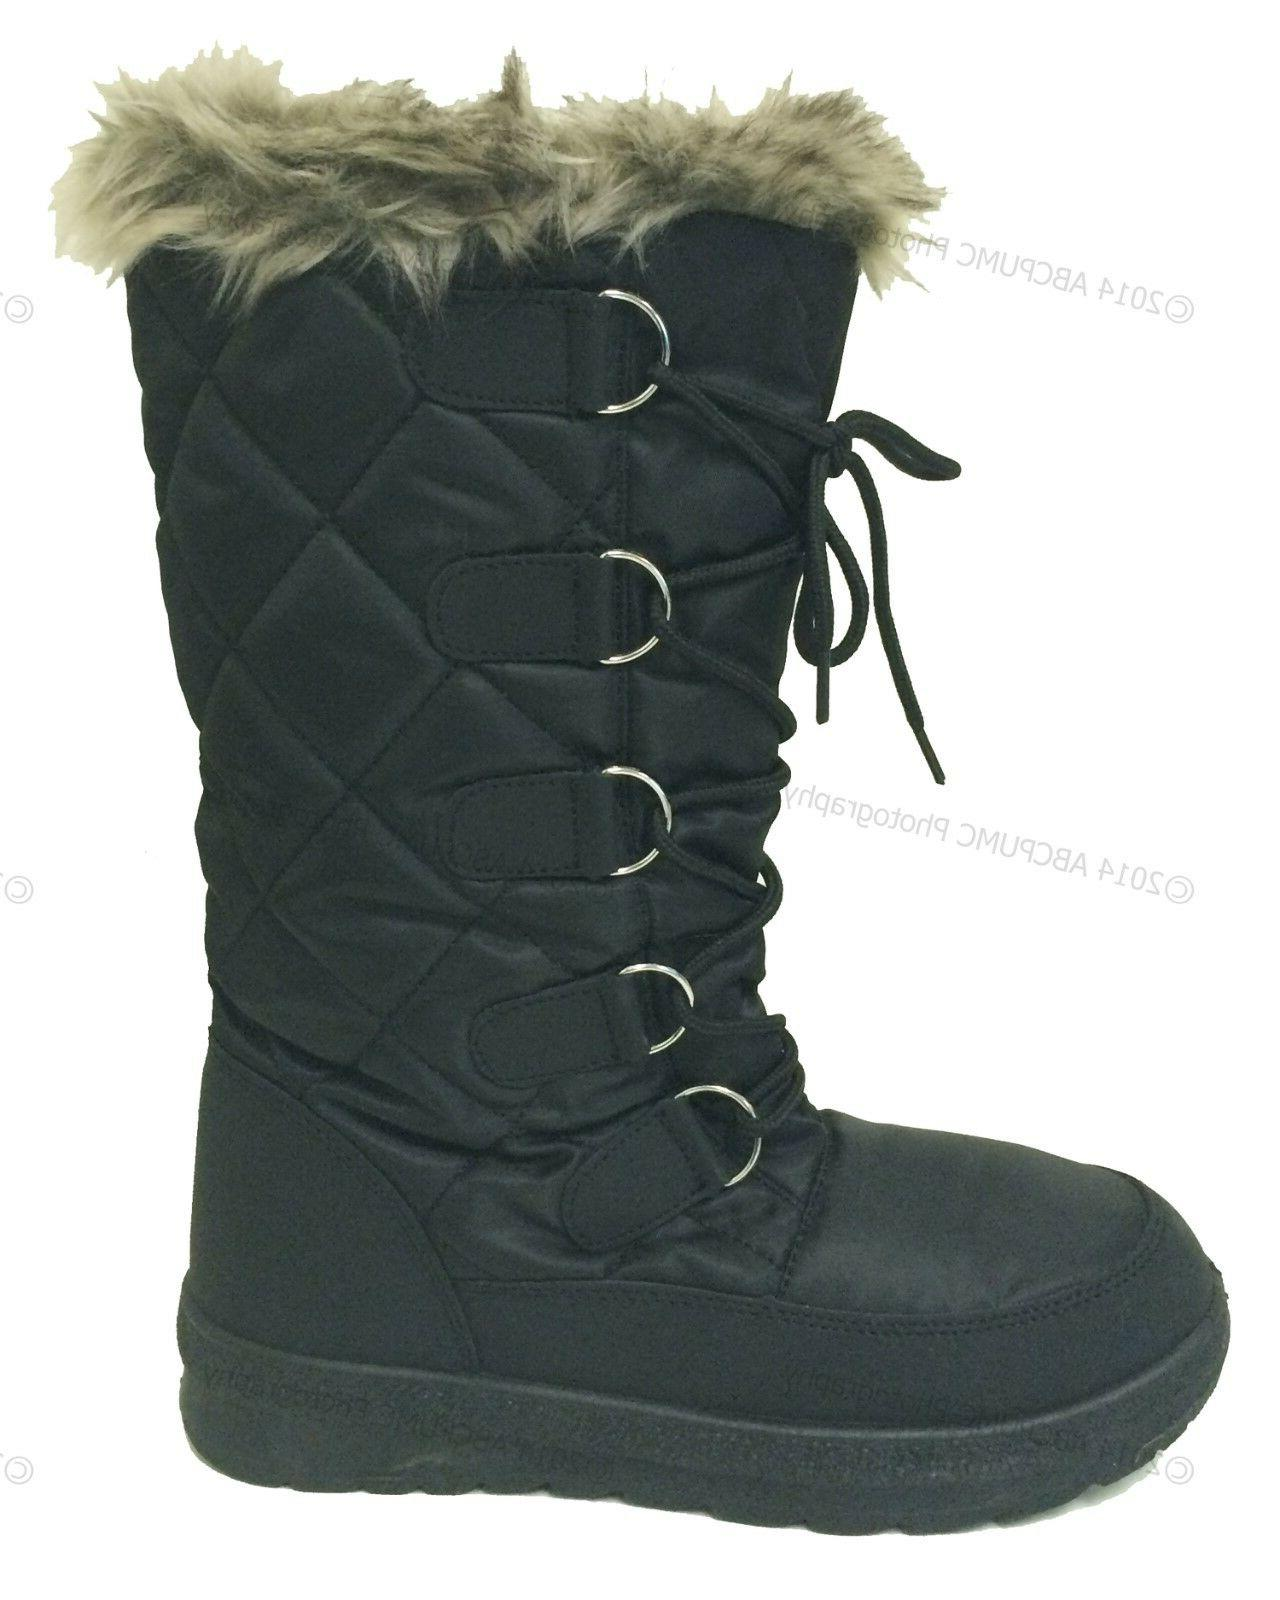 Women's Winter Fur Warm Insulated Zipper Shoes,